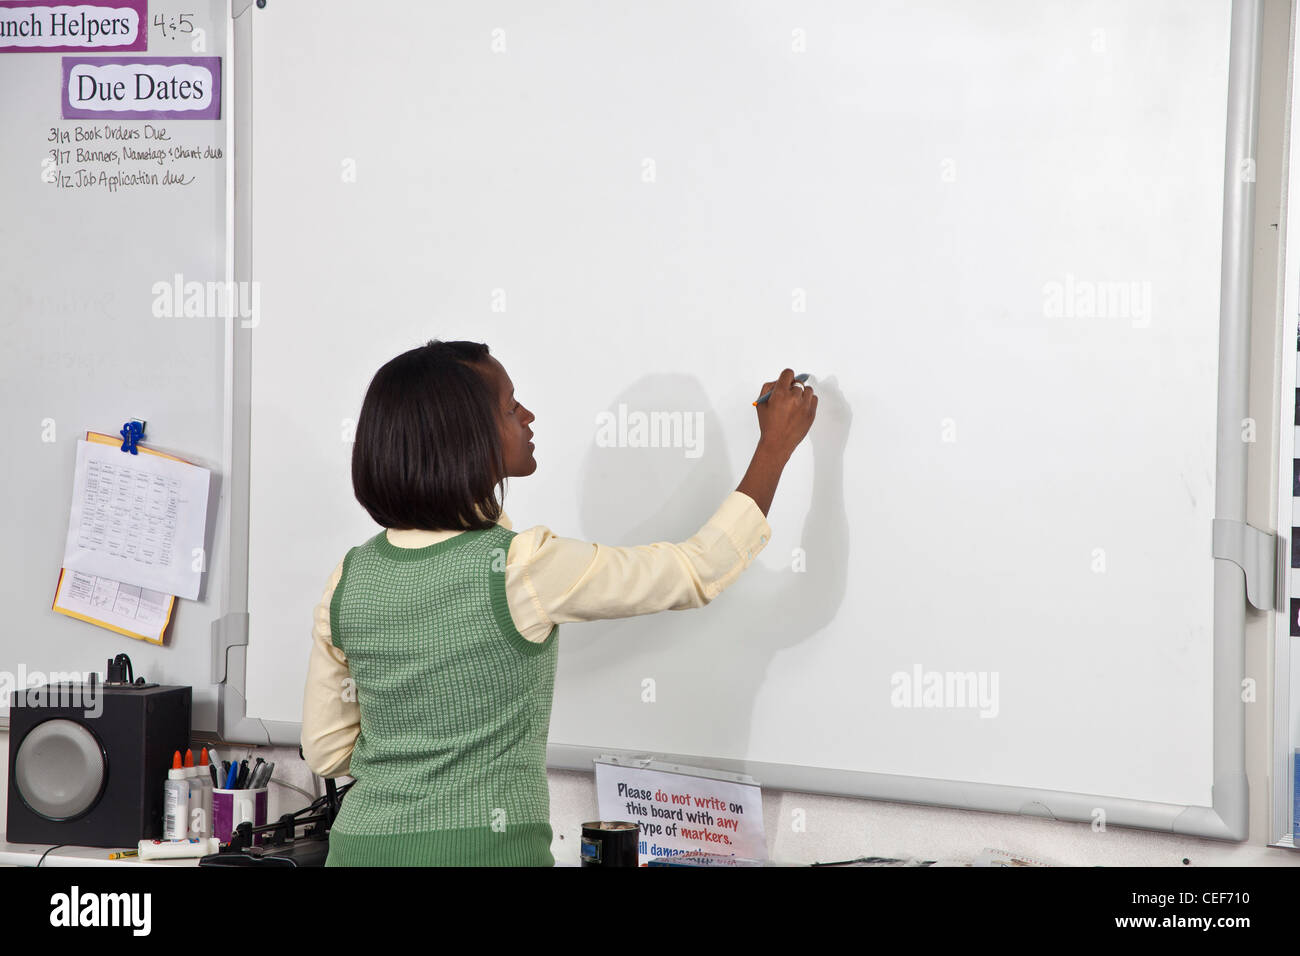 multi ethnic racial diversity racially diverse multicultural multi cultural interracial inter female Teacher writing - Stock Image